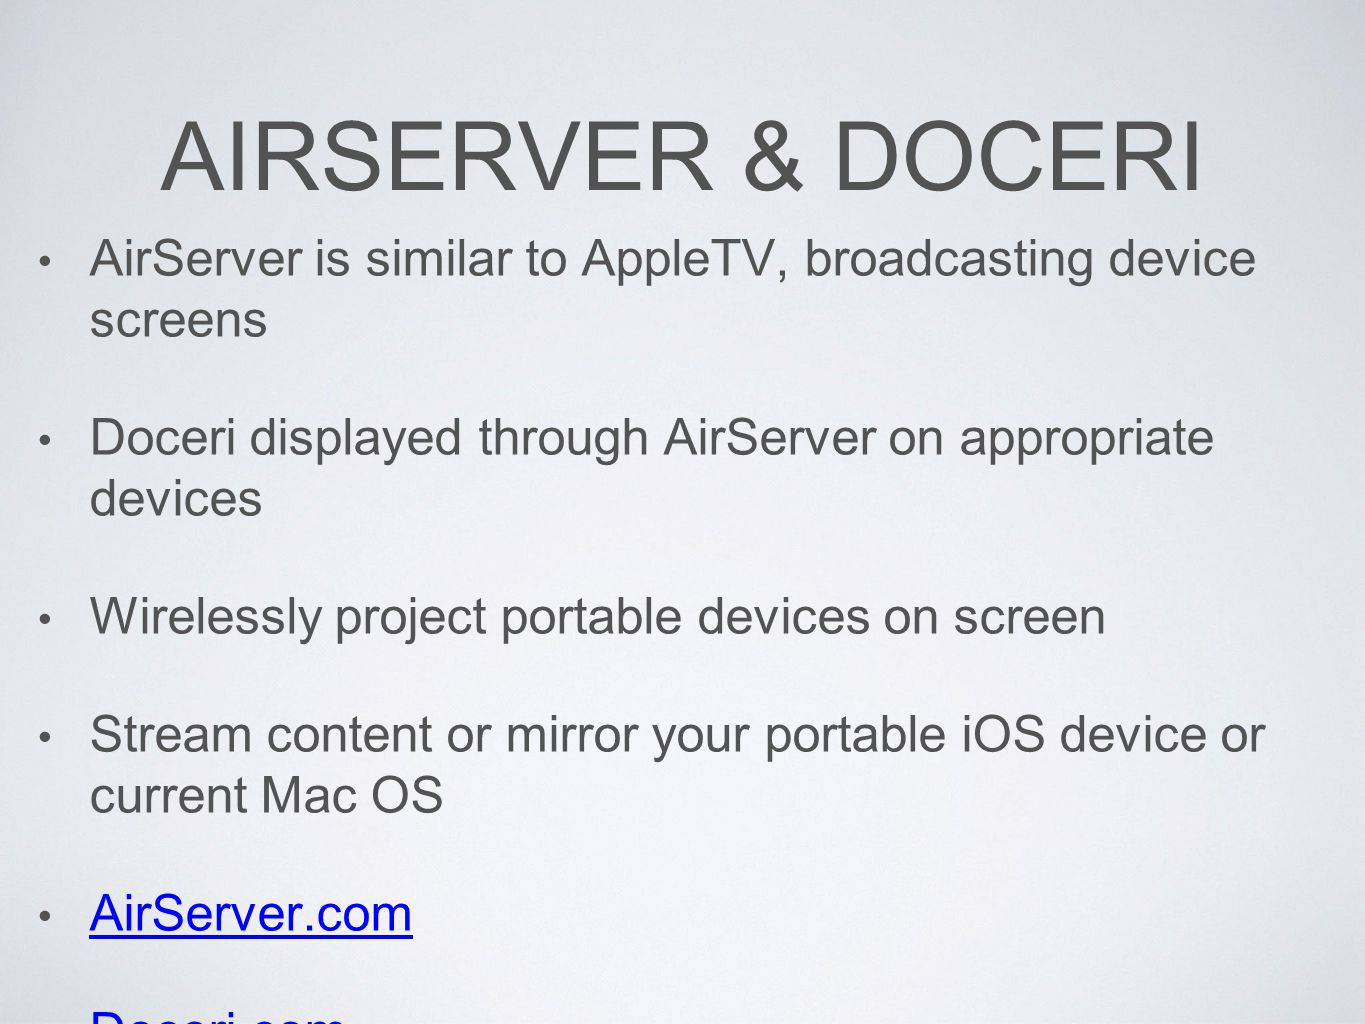 AIRSERVER & DOCERI AirServer is similar to AppleTV, broadcasting device screens Doceri displayed through AirServer on appropriate devices Wirelessly project portable devices on screen Stream content or mirror your portable iOS device or current Mac OS AirServer.com Doceri.com